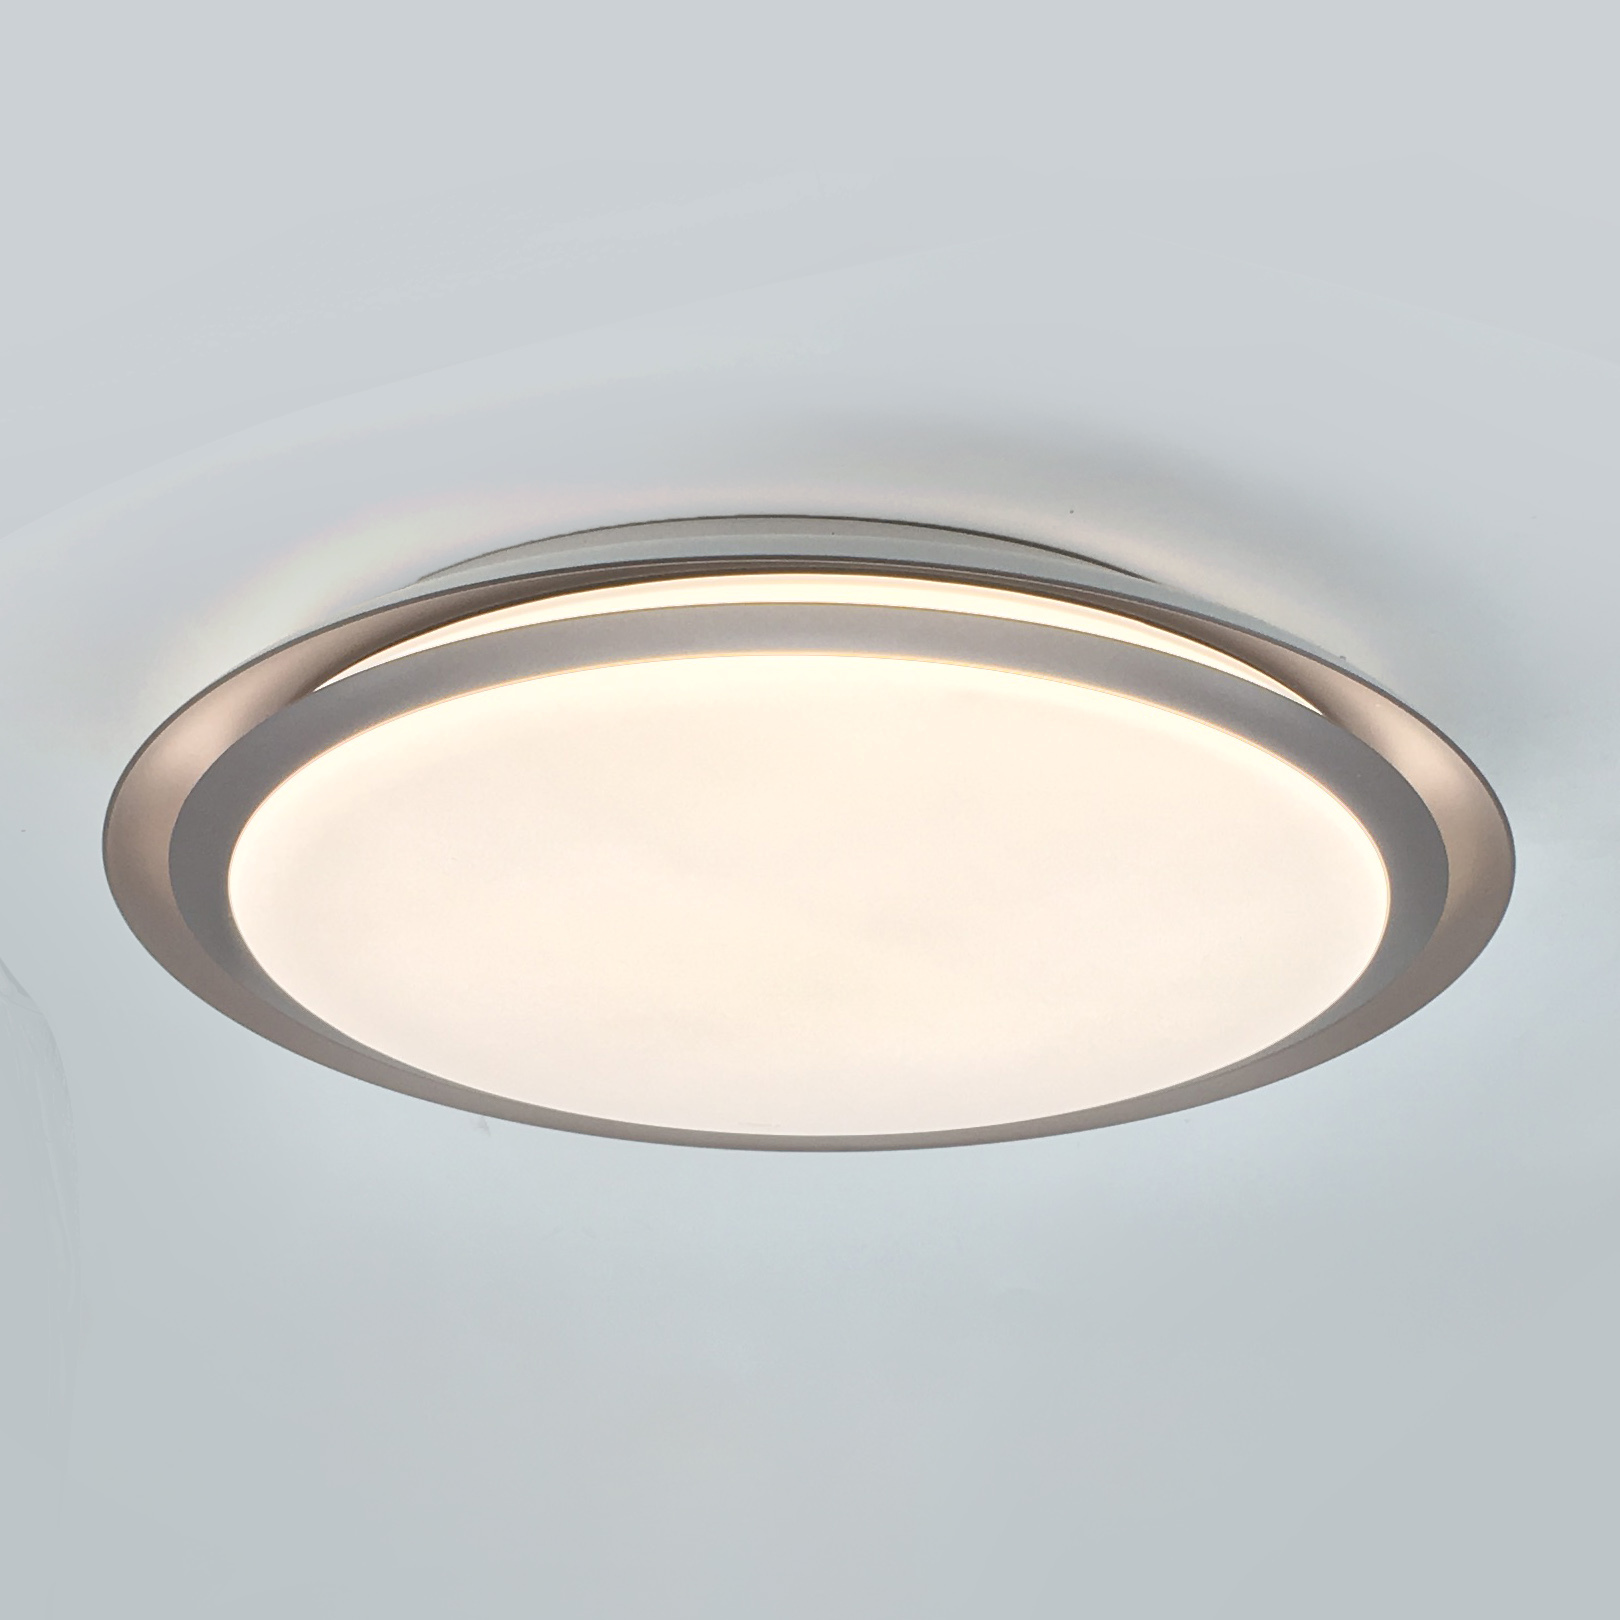 Hot selling products!  led flush mount ceiling light 10in-16